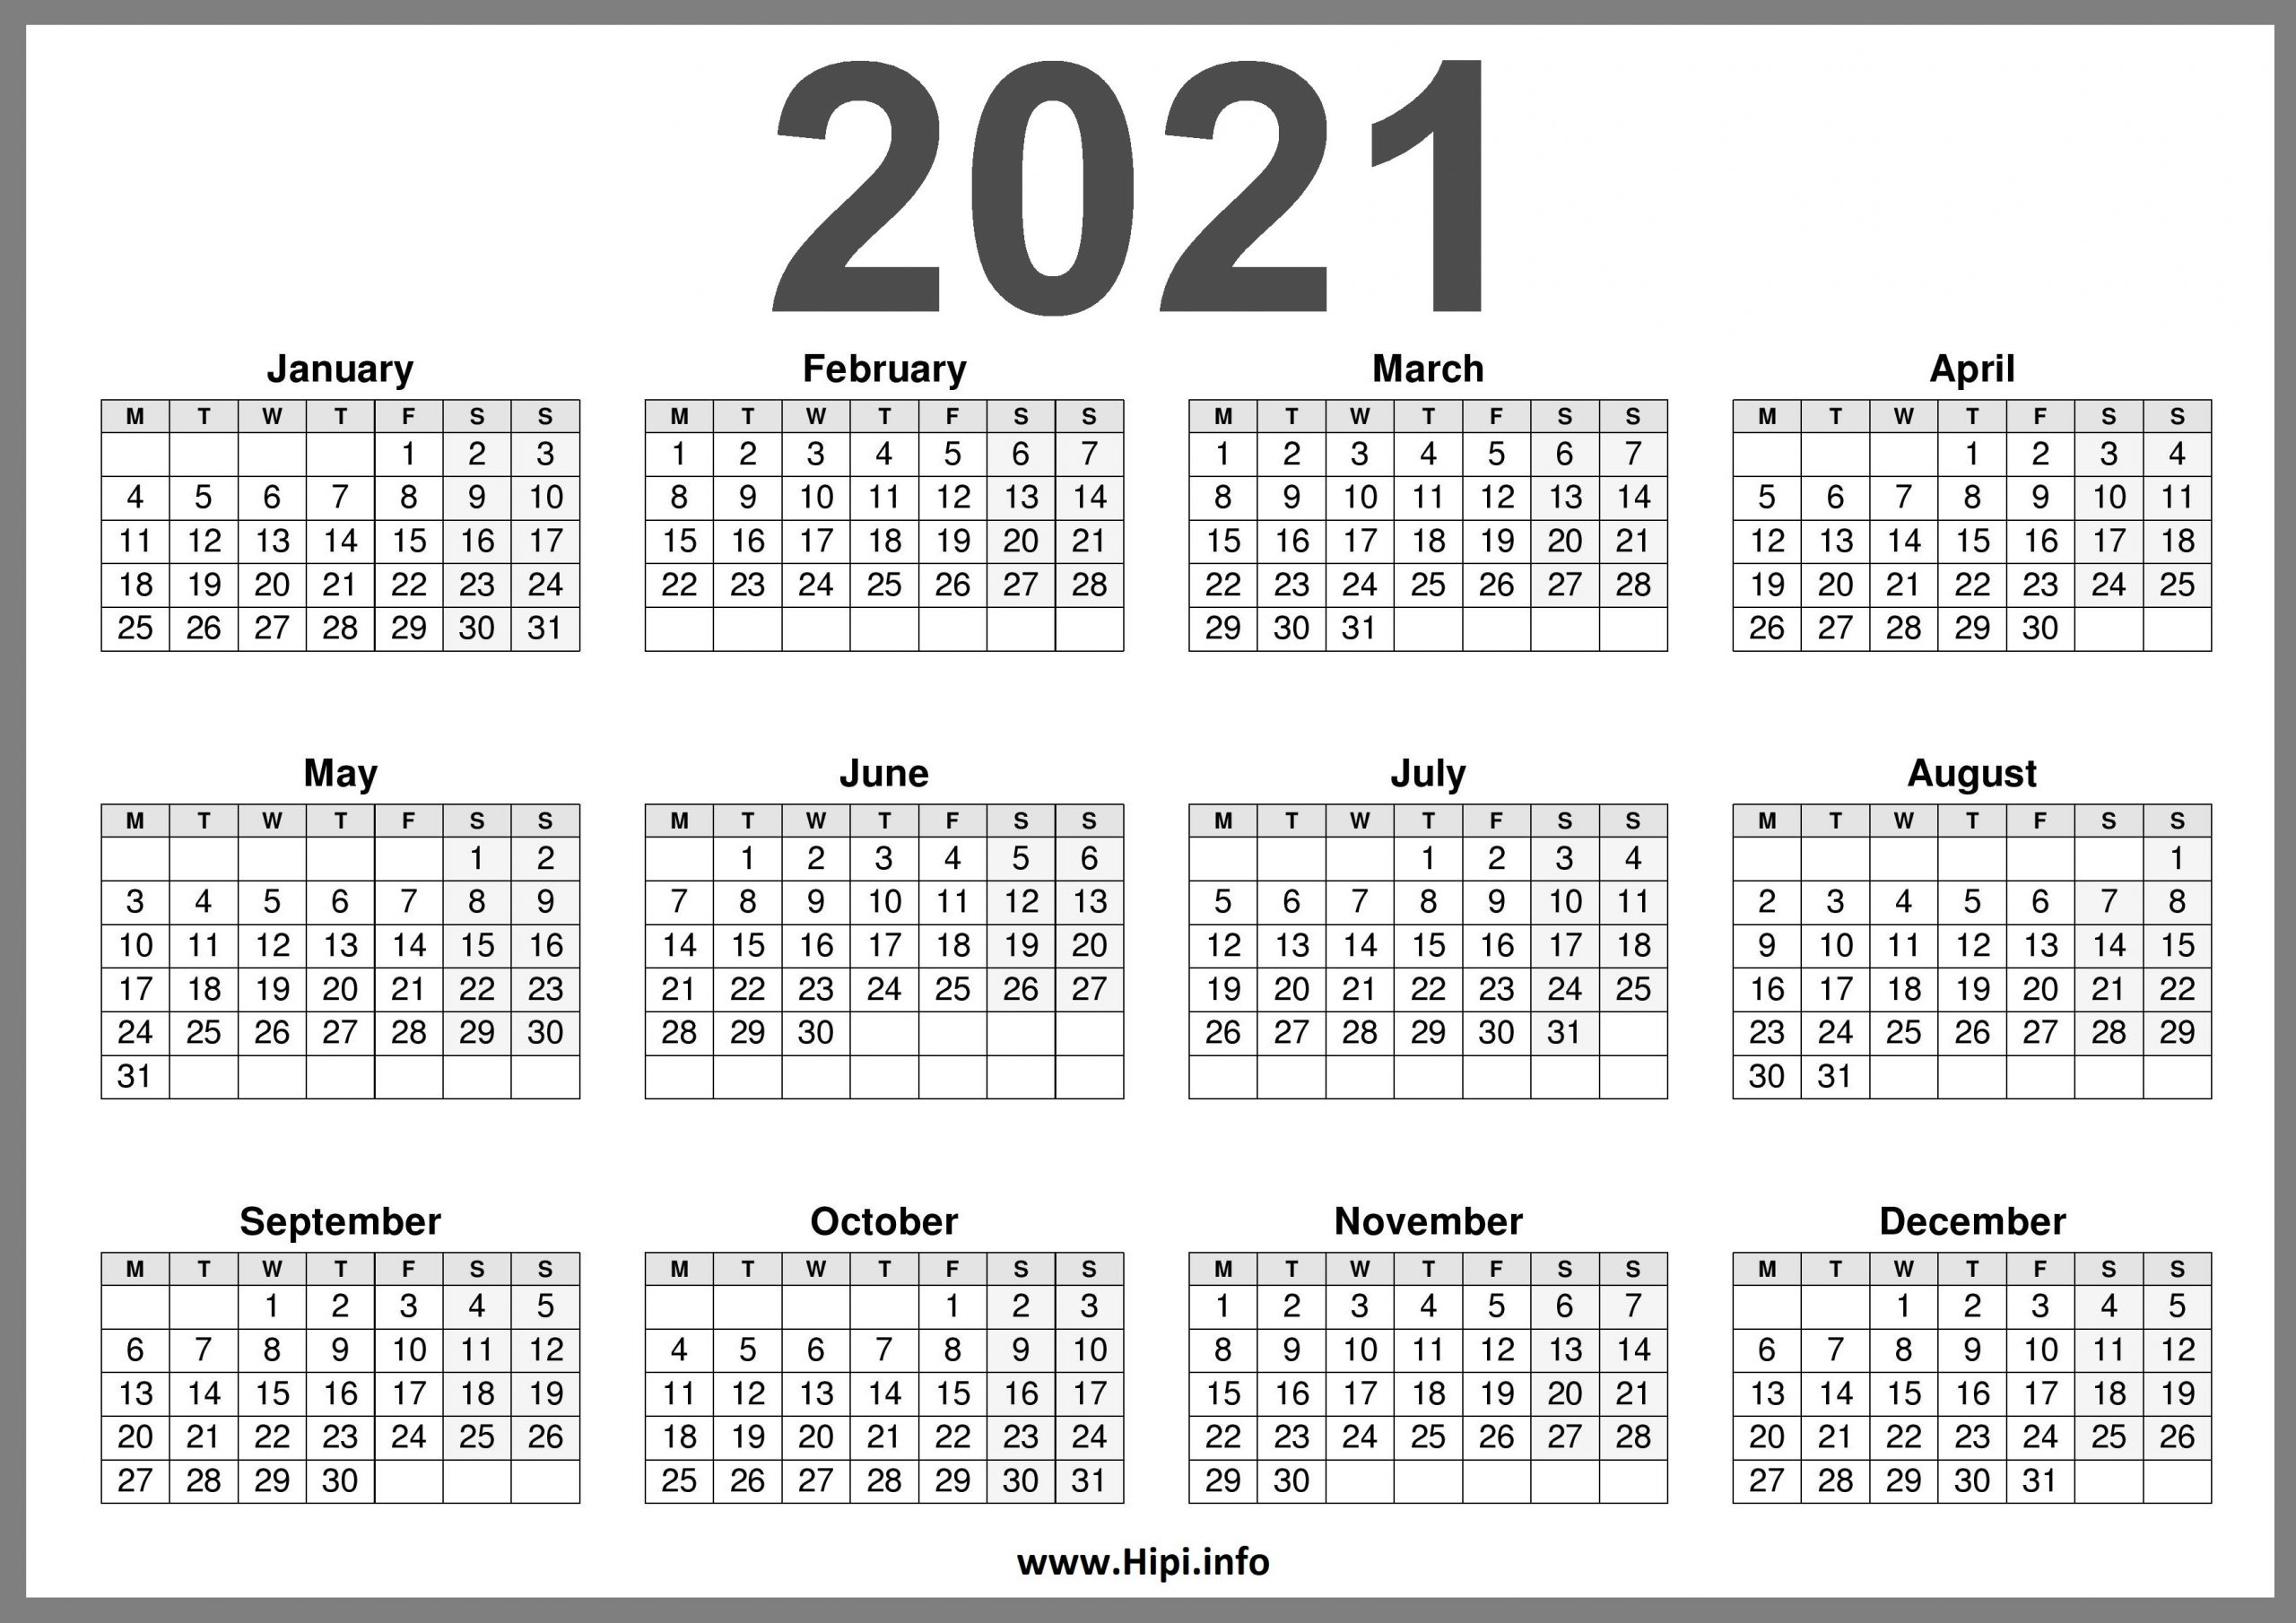 2021 Printable Calendar (Uk) United Kingdom - Hipi-2021 Print Free Calendars Without Downloading